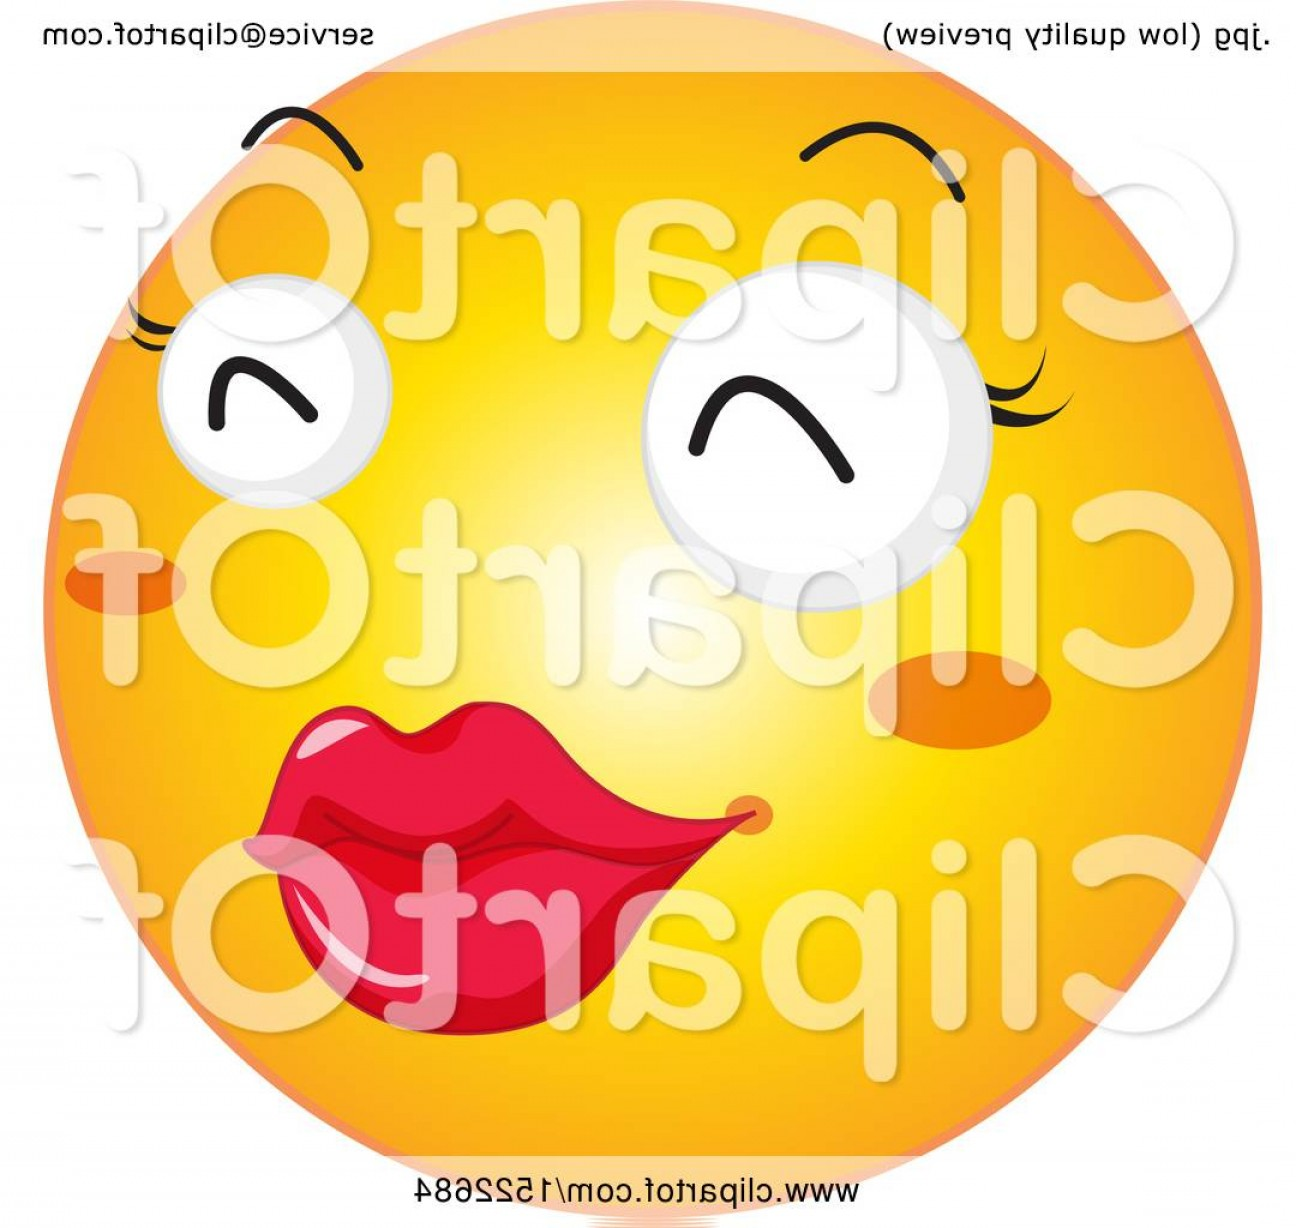 Emoji Fist Bump Vector Graphic: Emoticon Yellow Emoji Smiley With Puckered Lips